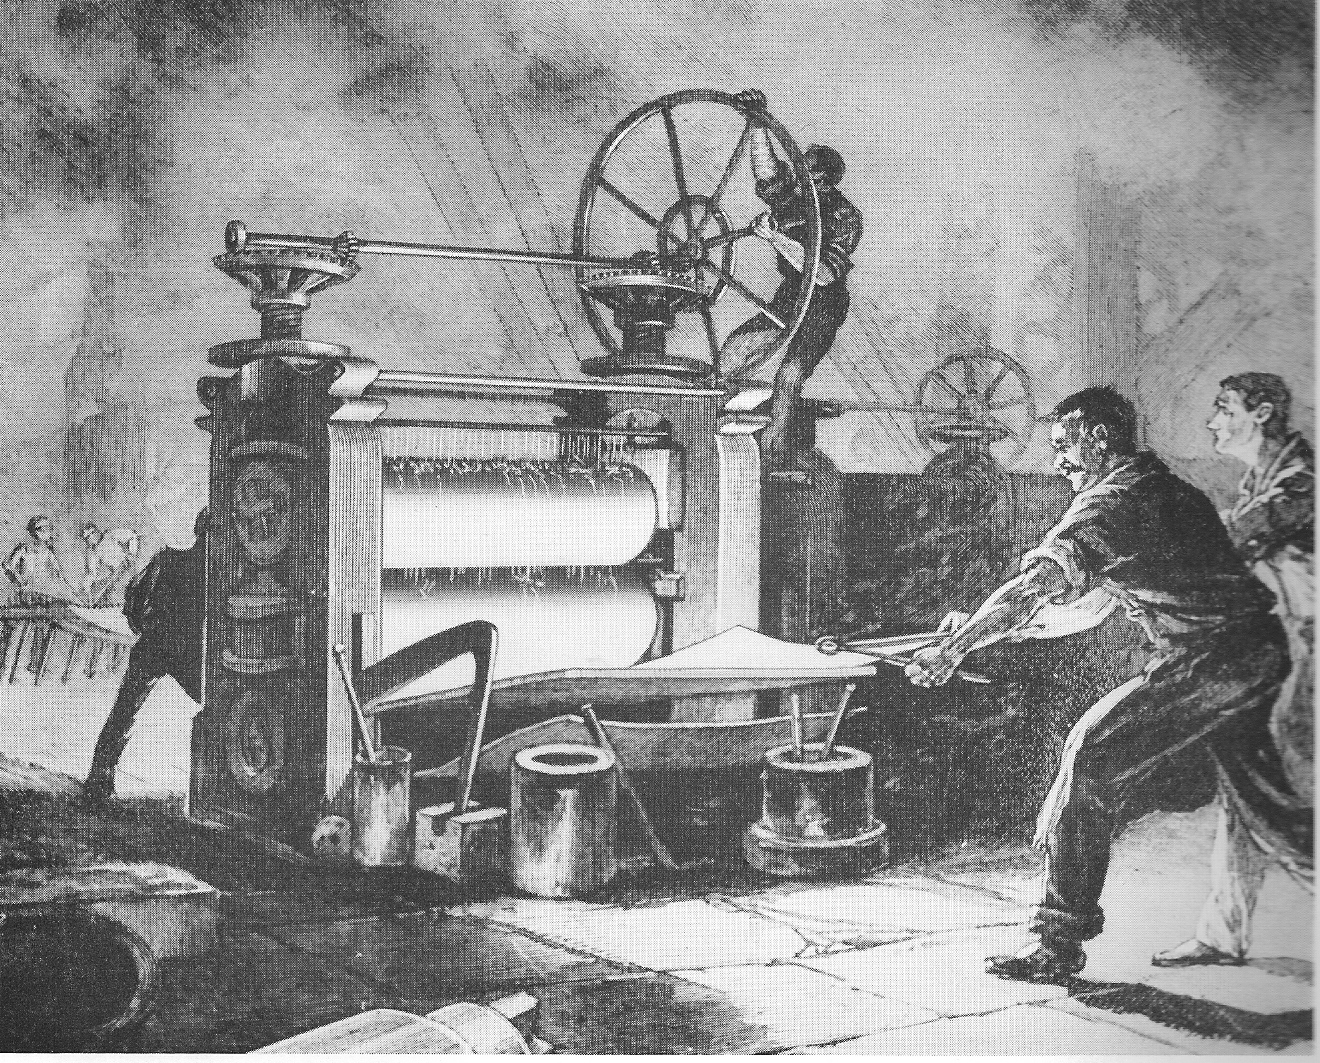 *Rolling mill pictured is not accurate size. (Ours is much smaller:))